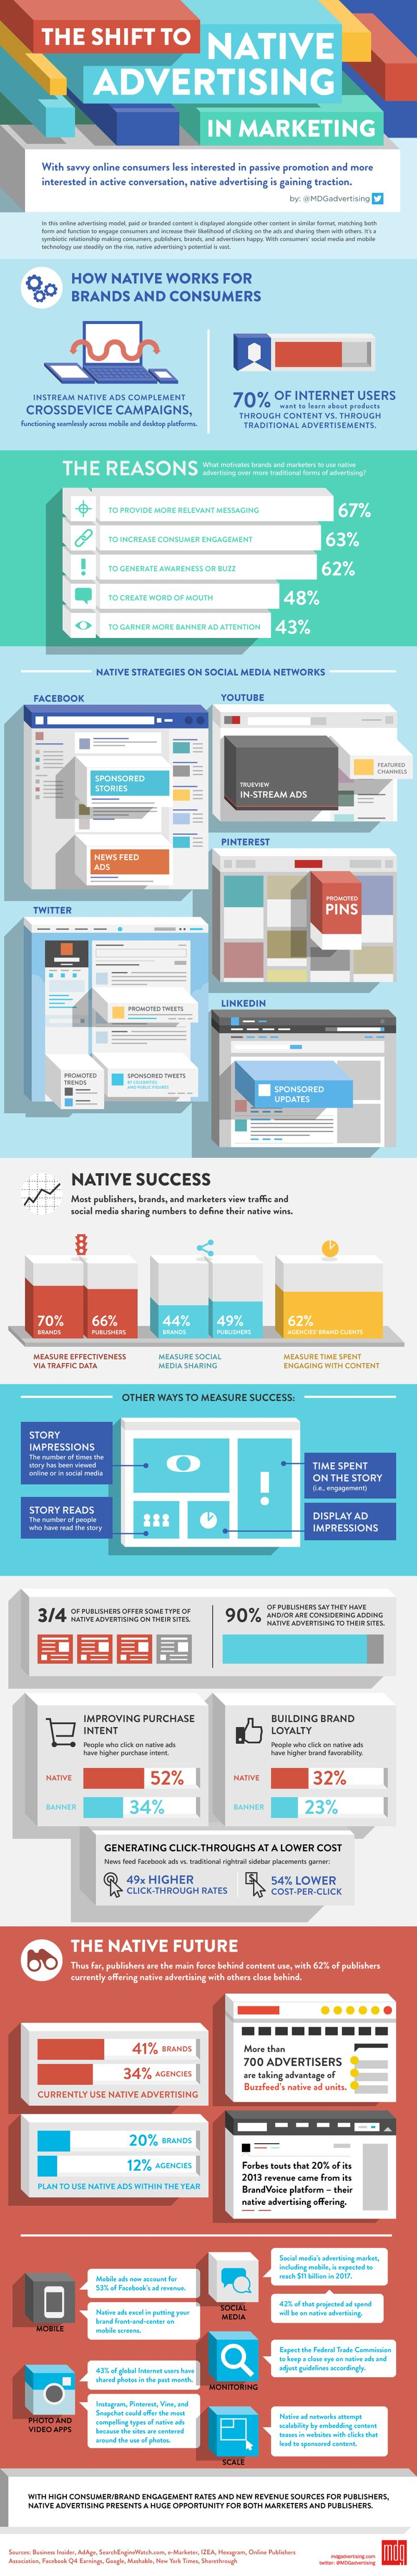 The Shift to #NativeAdvertising in Marketing